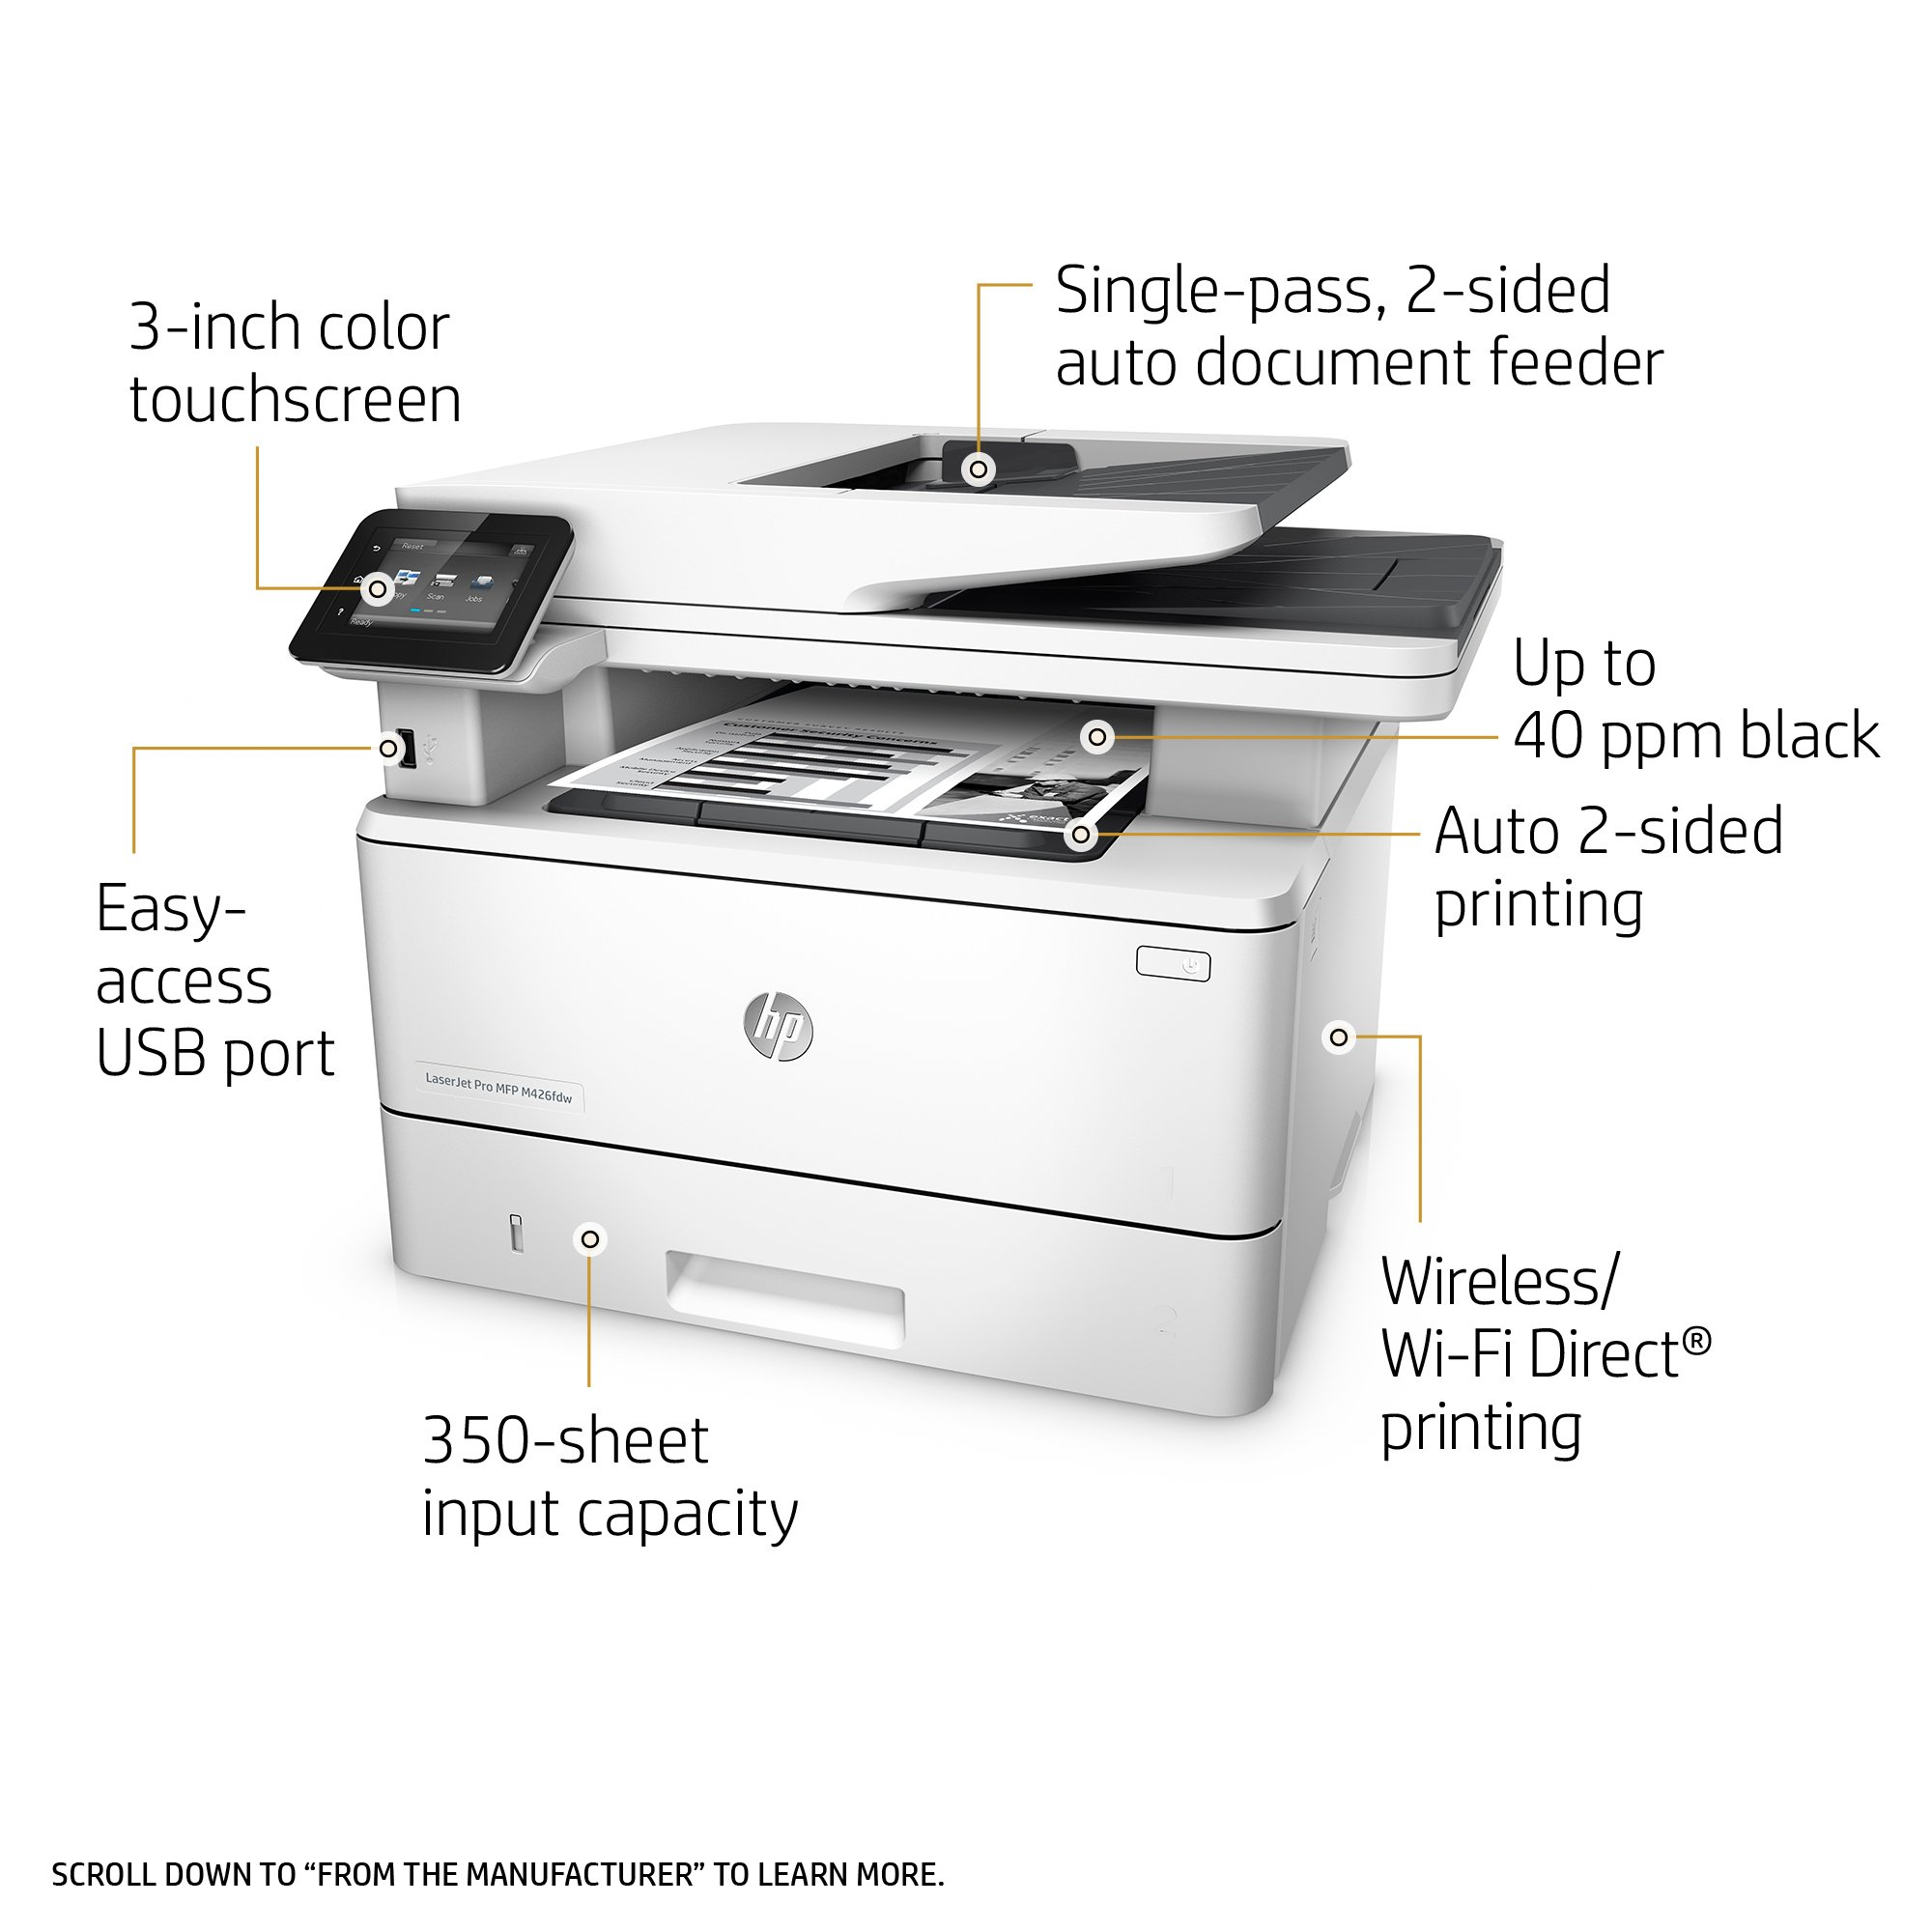 HP LaserJet Pro M426fdw All-in-One Wireless Laser Printer with Double-Sided Printing, Amazon Dash Replenishment ready (F6W15A) by HP (Image #1)